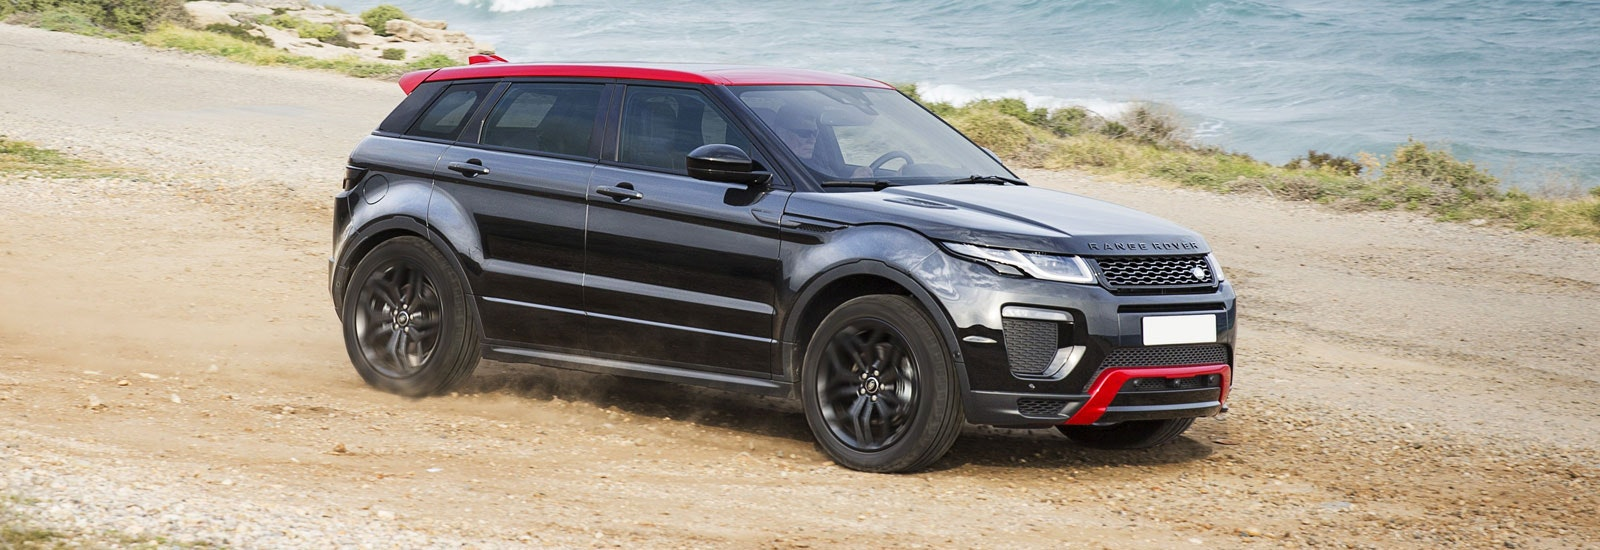 2018 Range Rover Evoque 7 Seater Price Specs And Release Date Carwow